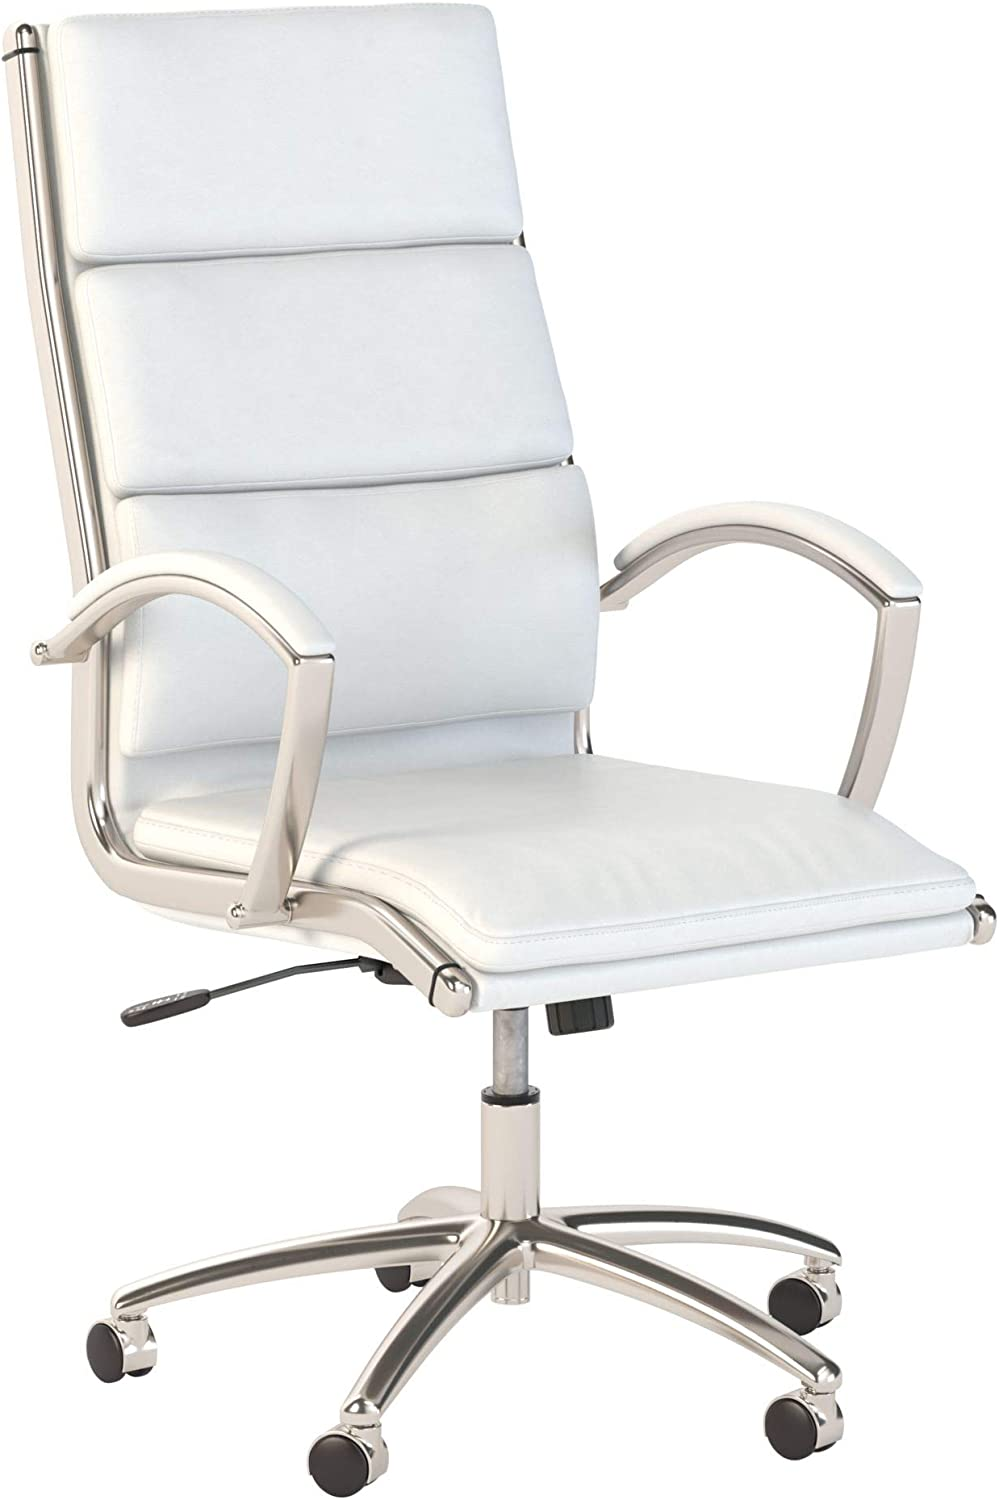 Bush Business Furniture Office by kathy ireland Method High Back Executive Chair, White Leather